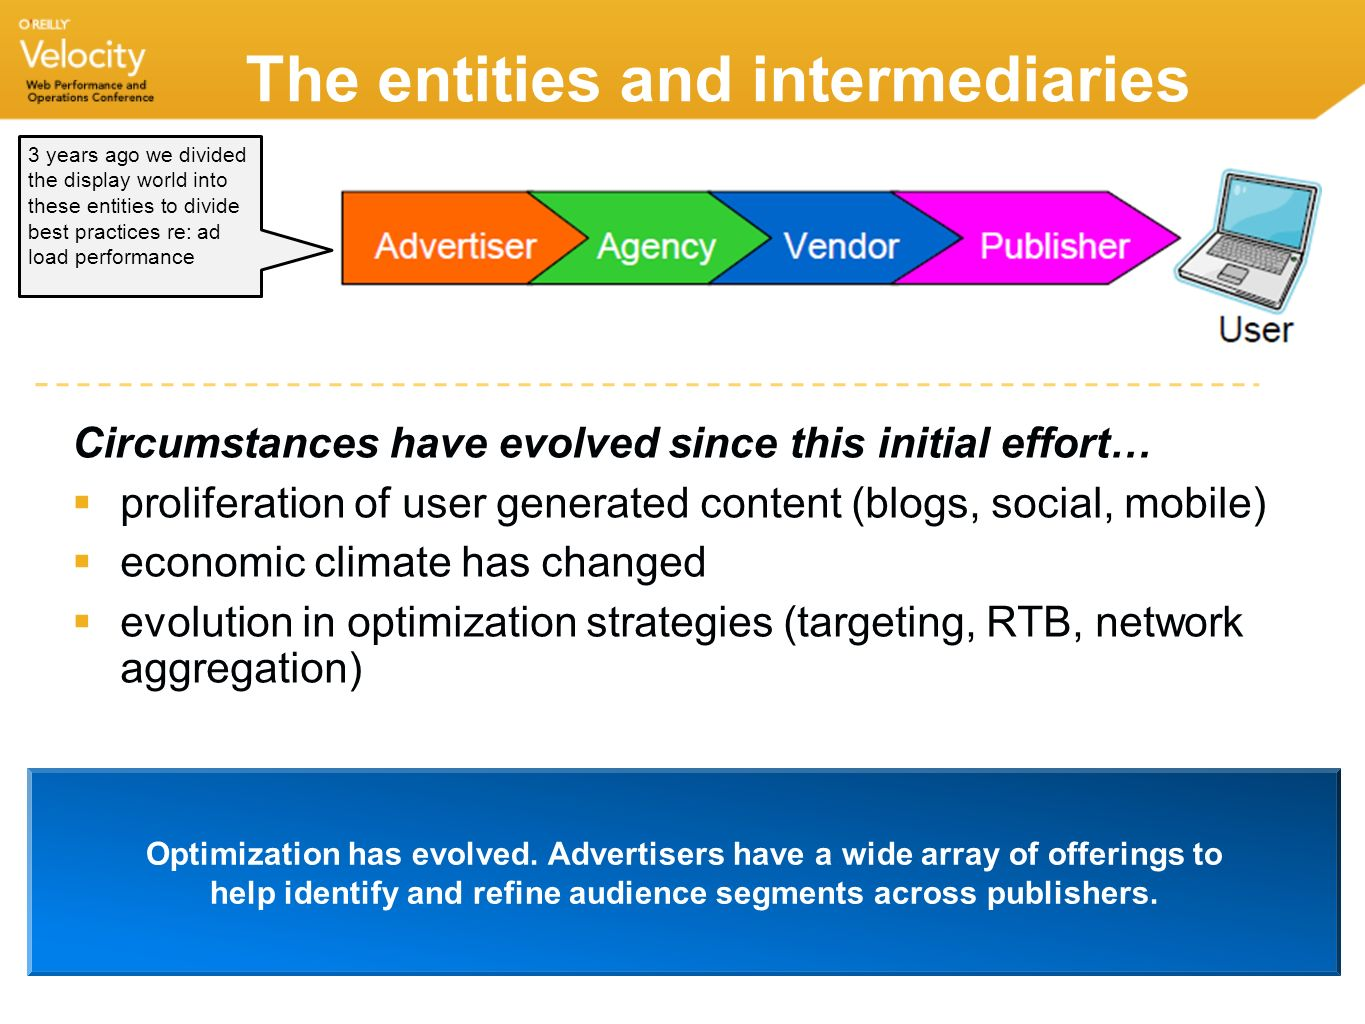 The entities and intermediaries Circumstances have evolved since this initial effort… proliferation of user generated content (blogs, social, mobile) economic climate has changed evolution in optimization strategies (targeting, RTB, network aggregation) 3 years ago we divided the display world into these entities to divide best practices re: ad load performance Optimization has evolved.